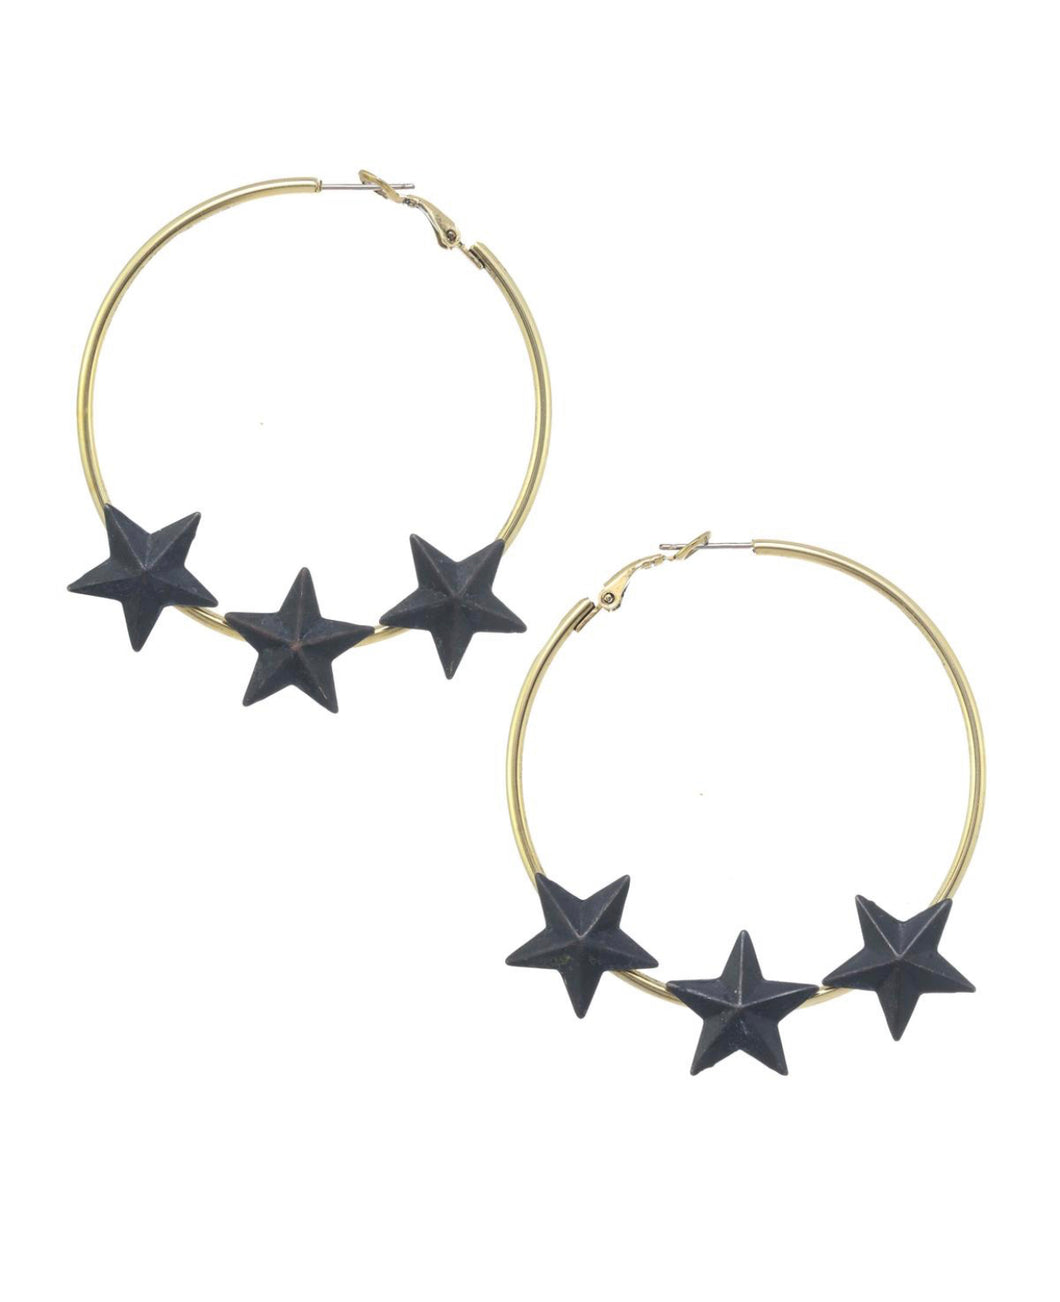 Gold and black stars hoops